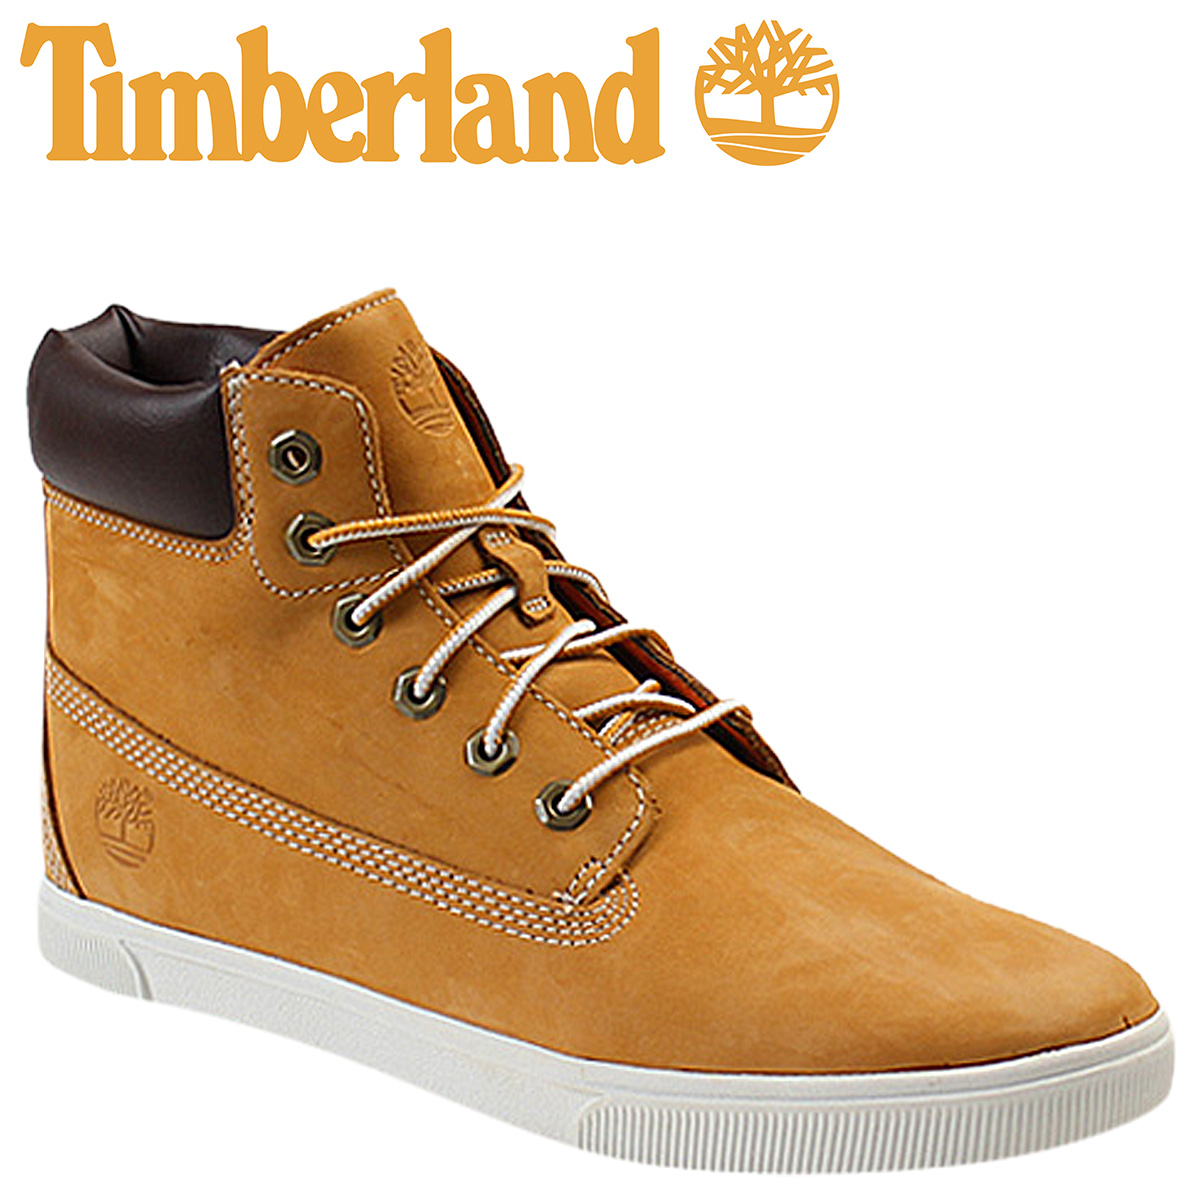 Timberland Timberland kids Lady's youth 6 inches race up cup sole boots 7692R JUNIOR 6 INCH LACE UP CUPSOLE BOOT nubuck men